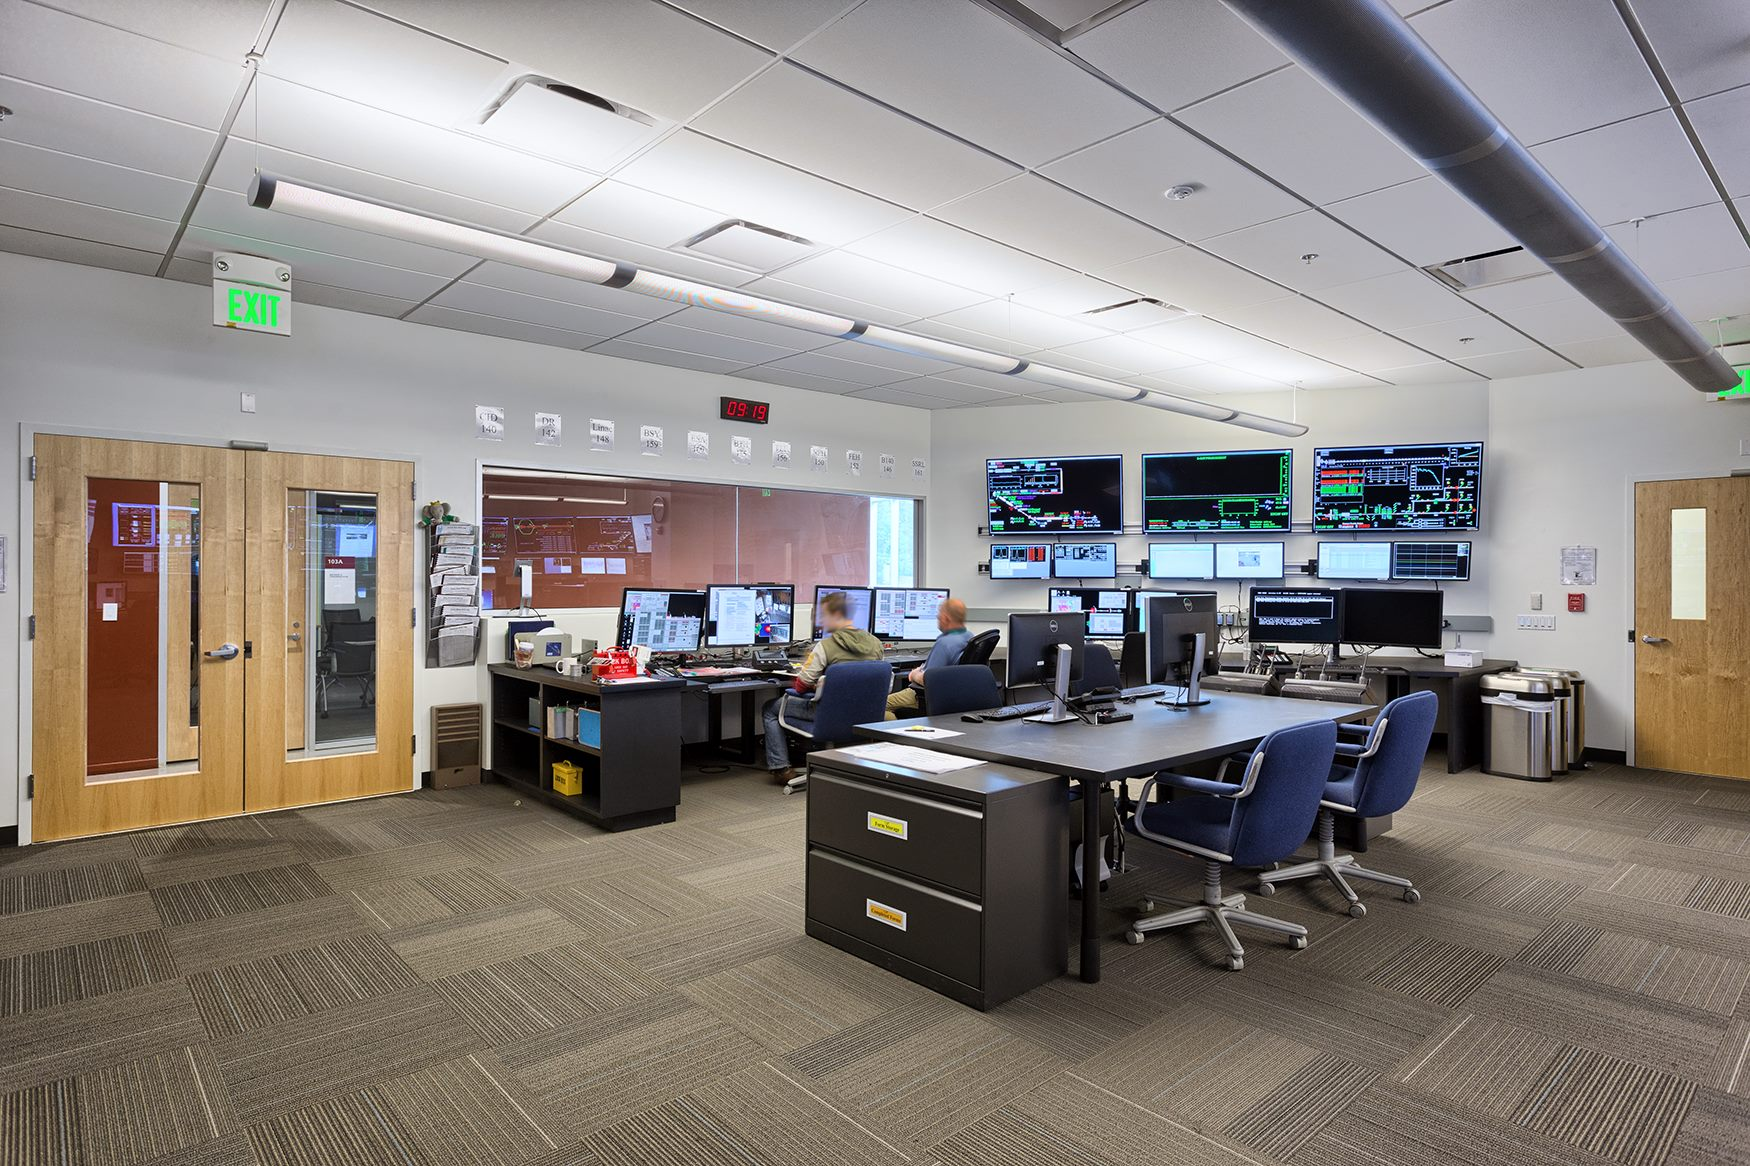 SLAC Building 52 Control and Network Room